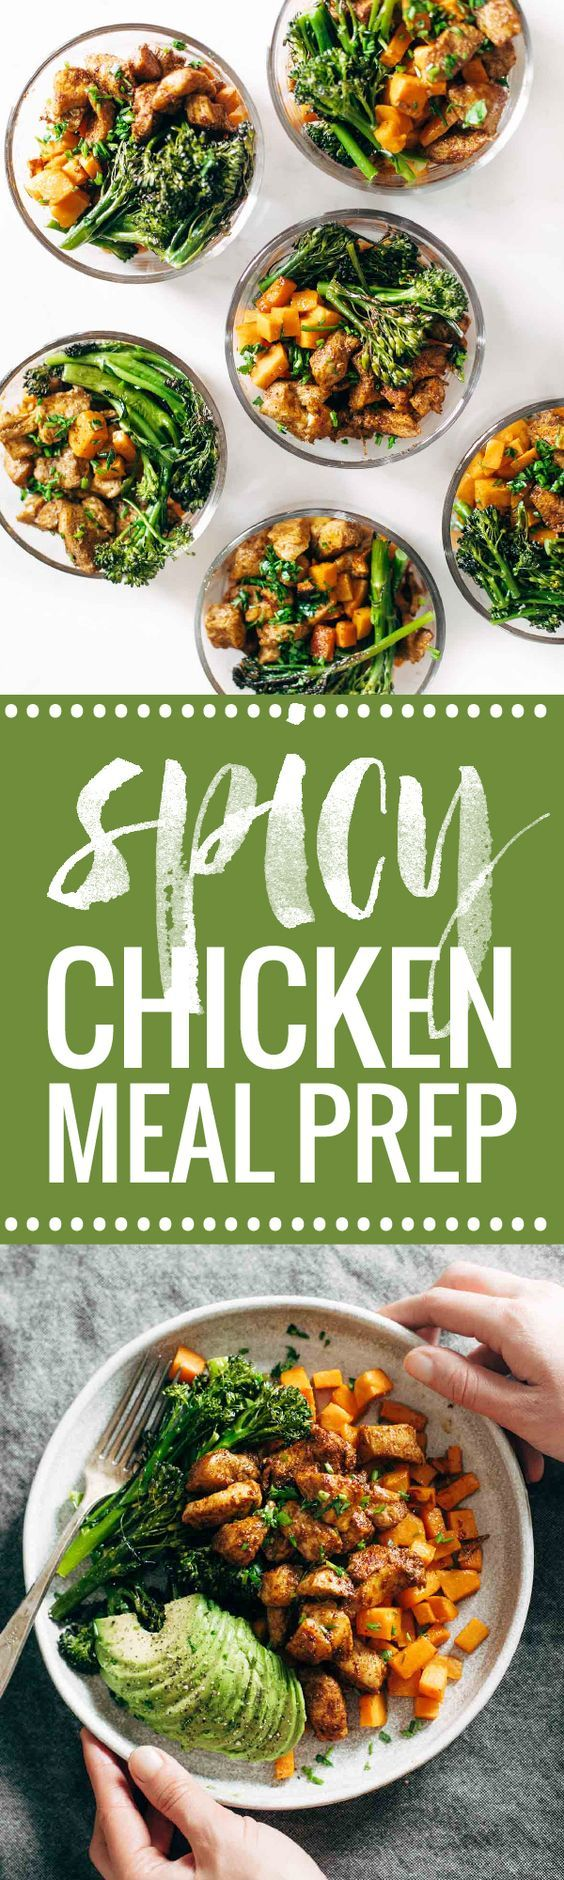 Spicy Chicken and Sweet Potato Meal Prep Magic! 3 big sheet pans 45 minutes = healthy meals for a week!   pinchofyum.com